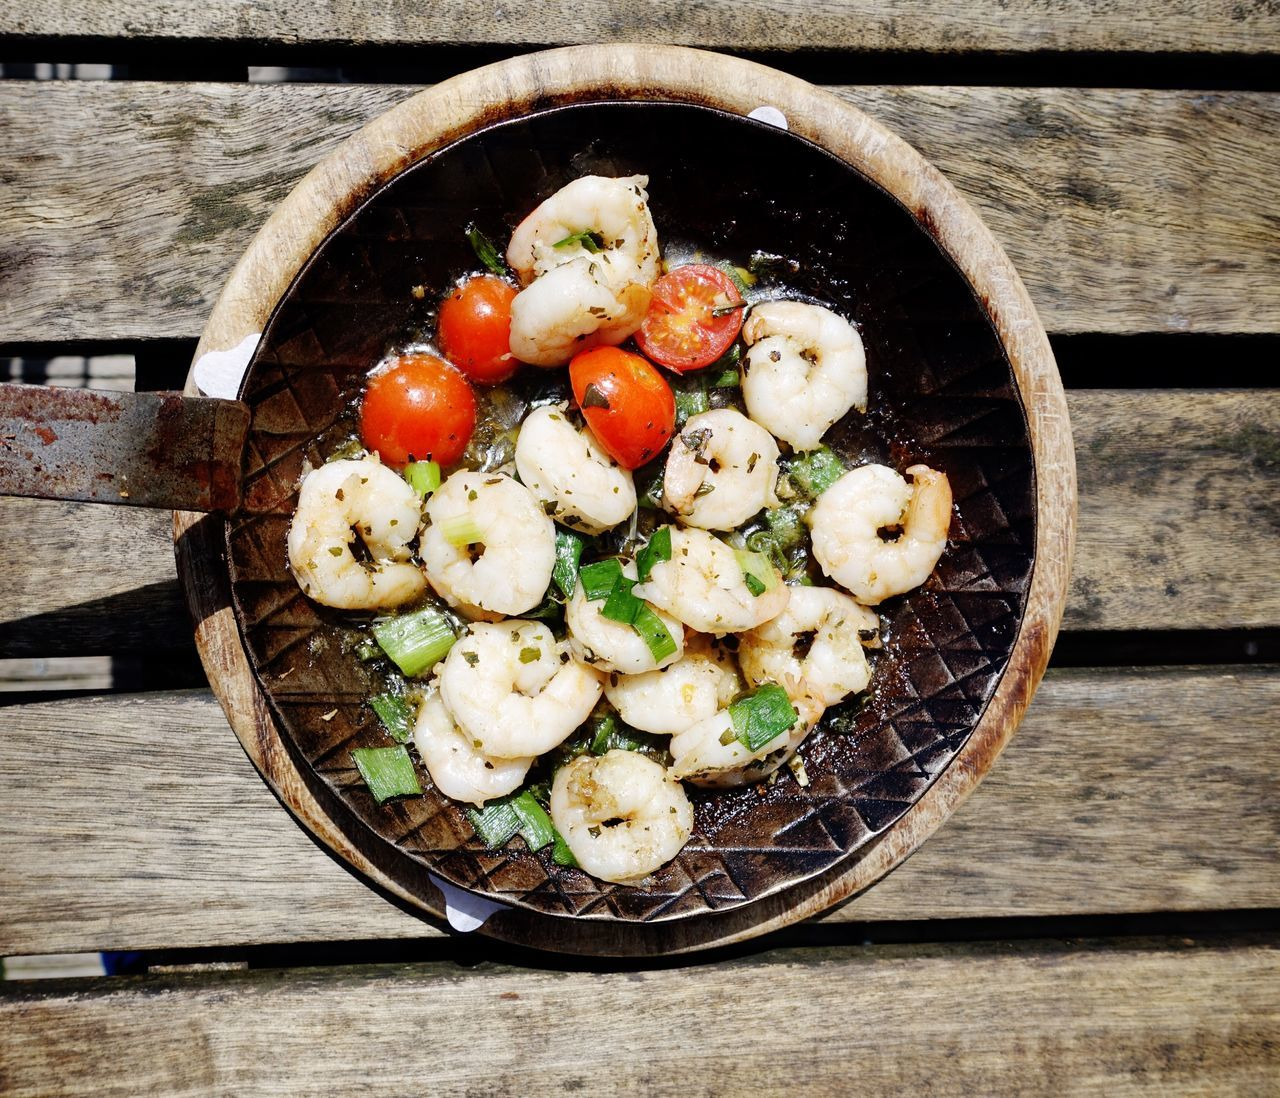 Food And Drink Wood - Material High Angle View Healthy Eating No People Food Ready-to-eat Seafoods Pan Frying Pan Outdoors Crabs Prawns Garnelen